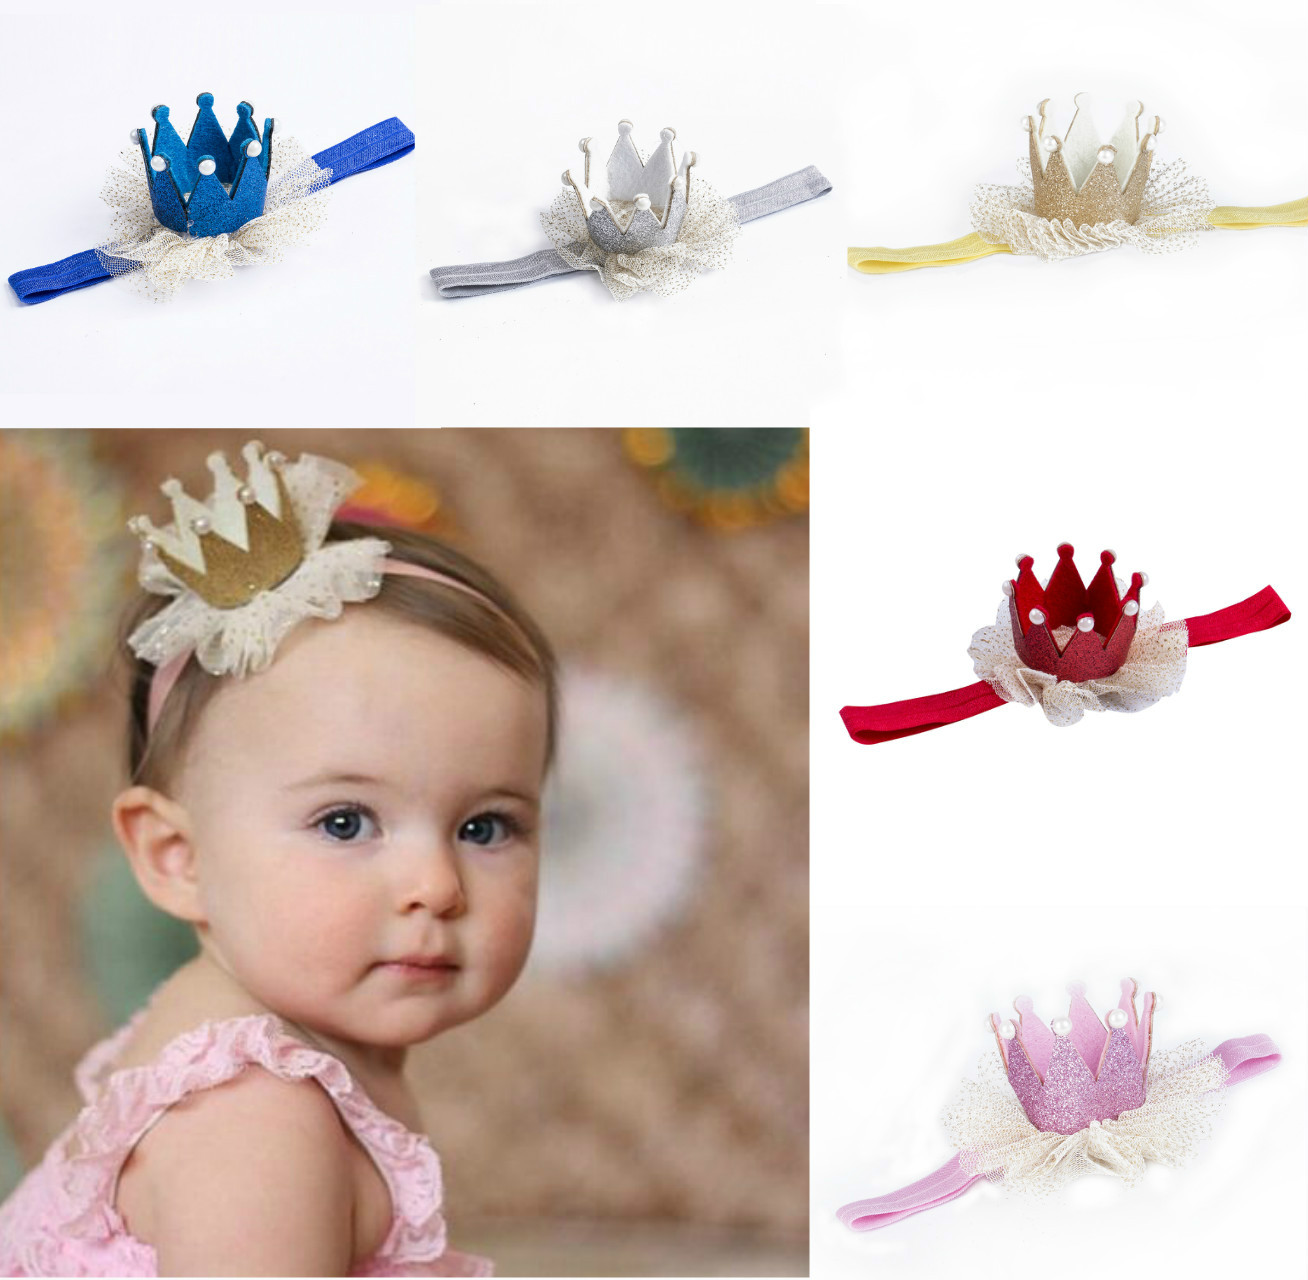 Baby Girl Hairband Headdress Newborn Baby Kids Flower Soft Elastic Tiara Hair Band Girls Bow Headband Hair Accessories футболка merc merc me001emaul76